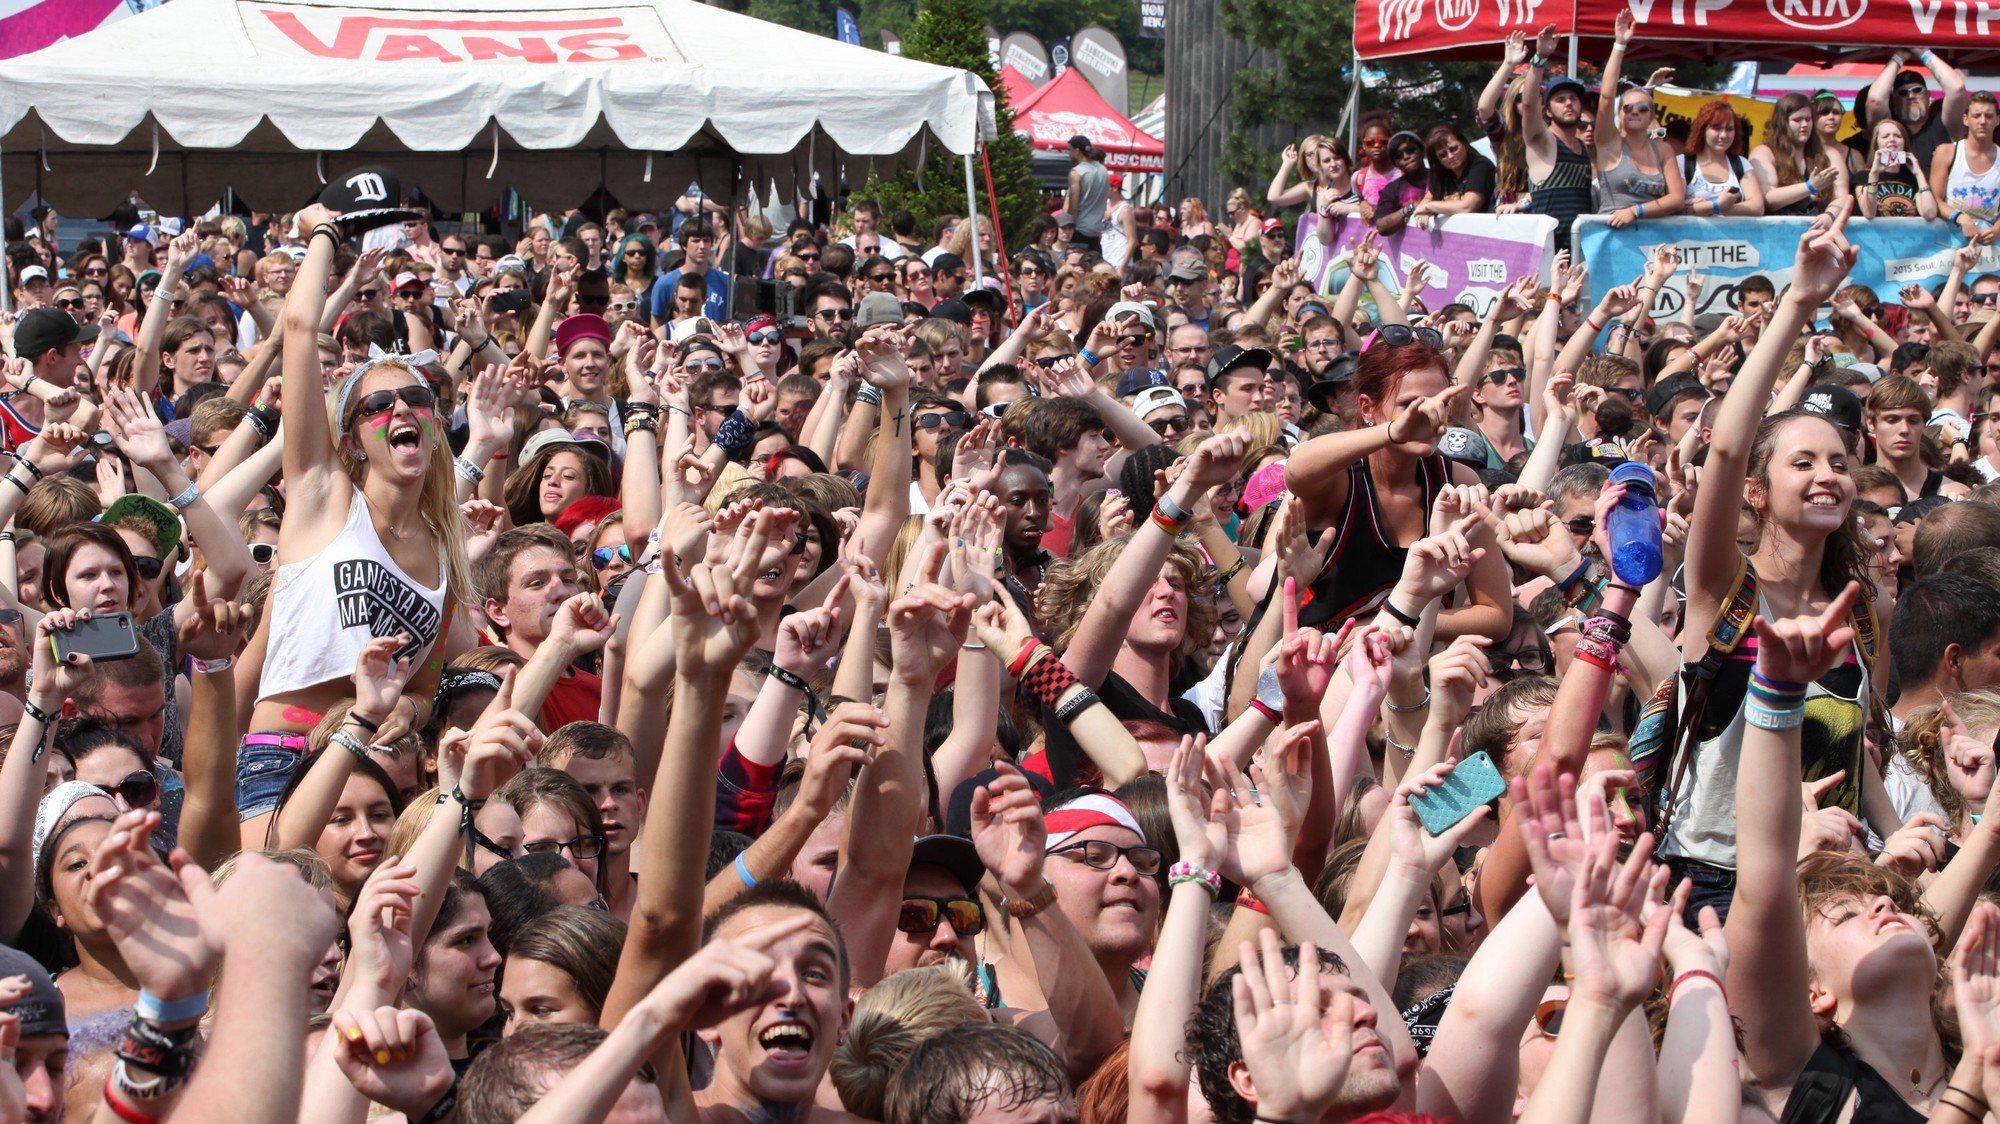 Warped Tour Founder Kevin Lyman Discusses Its Impact, for Better or